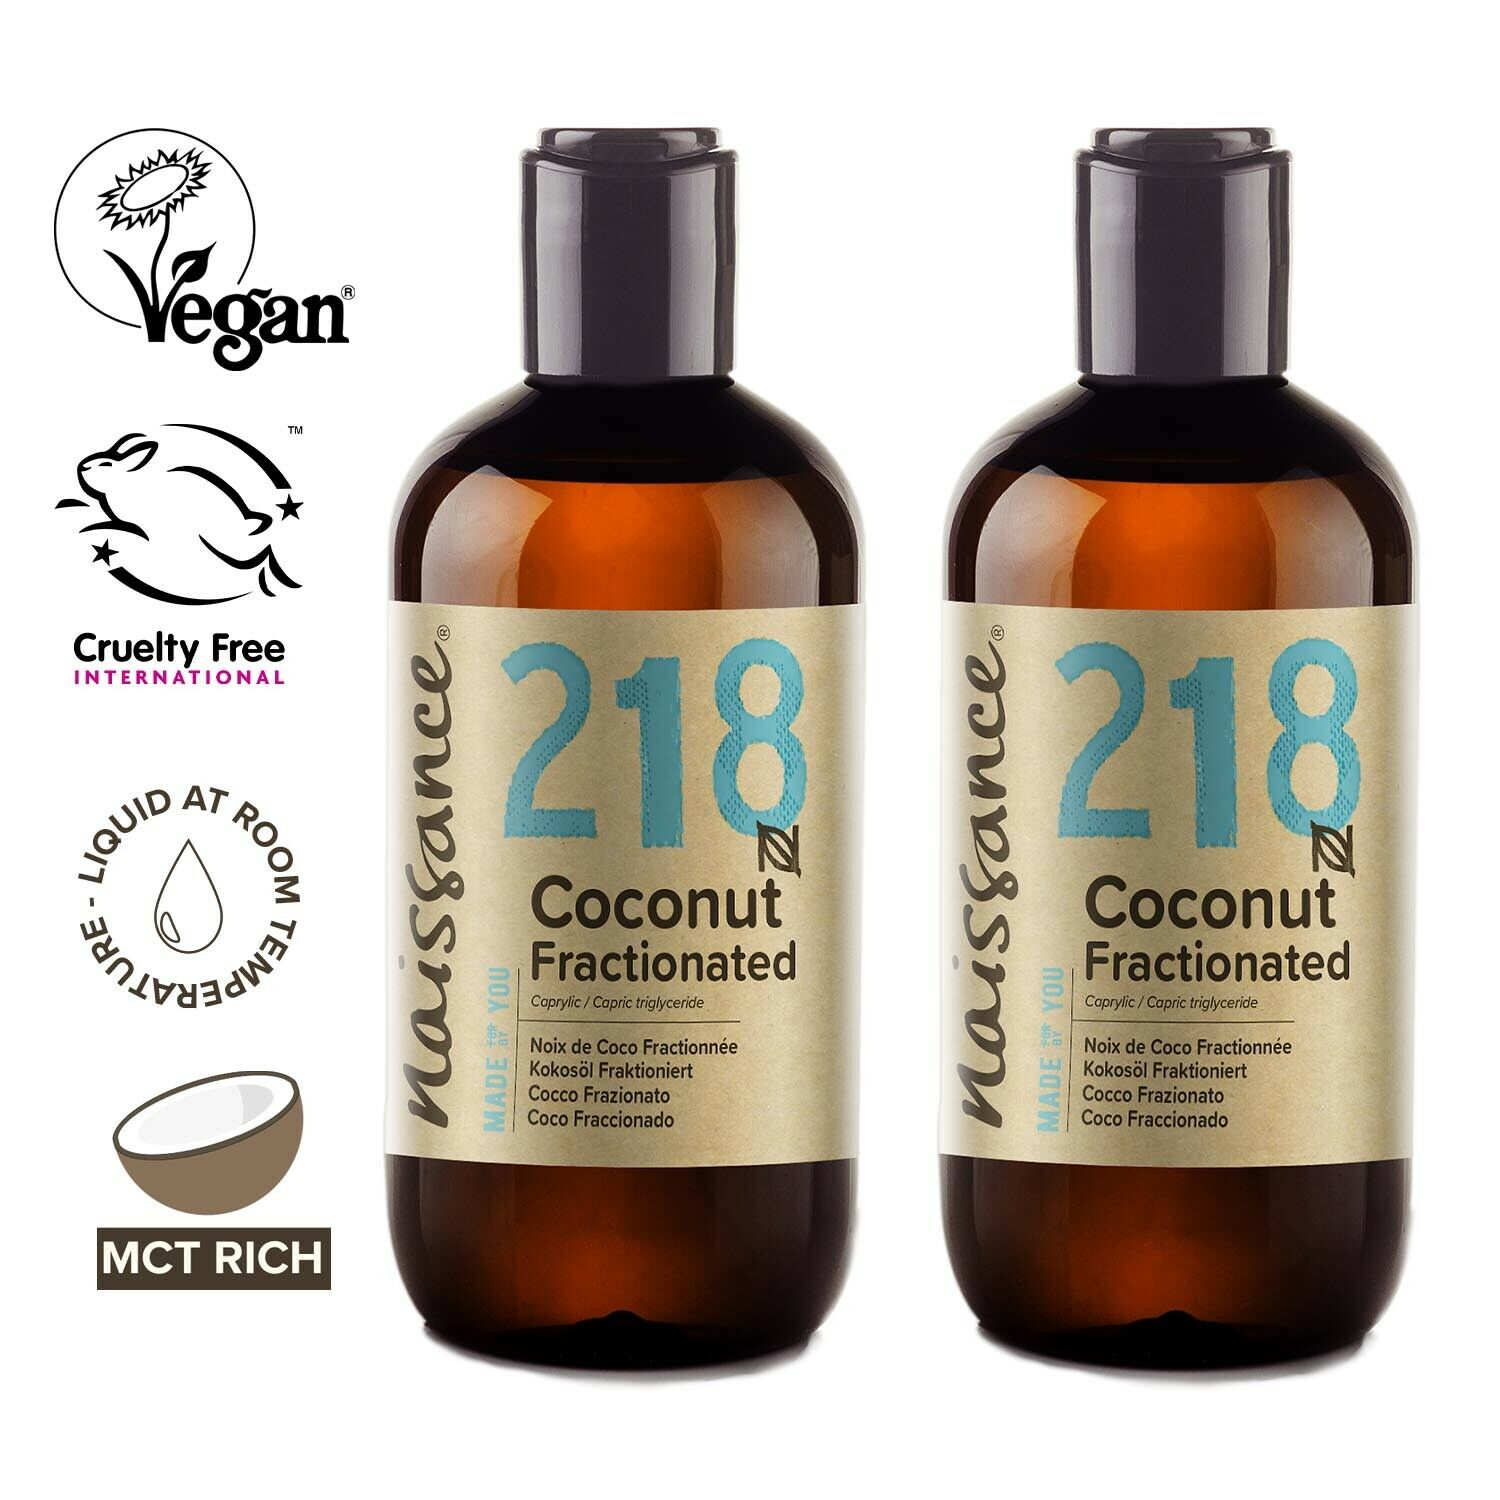 Naissance Coconut Fractionated Oil 500ml (2 x 250ml) Perfect for moisturising